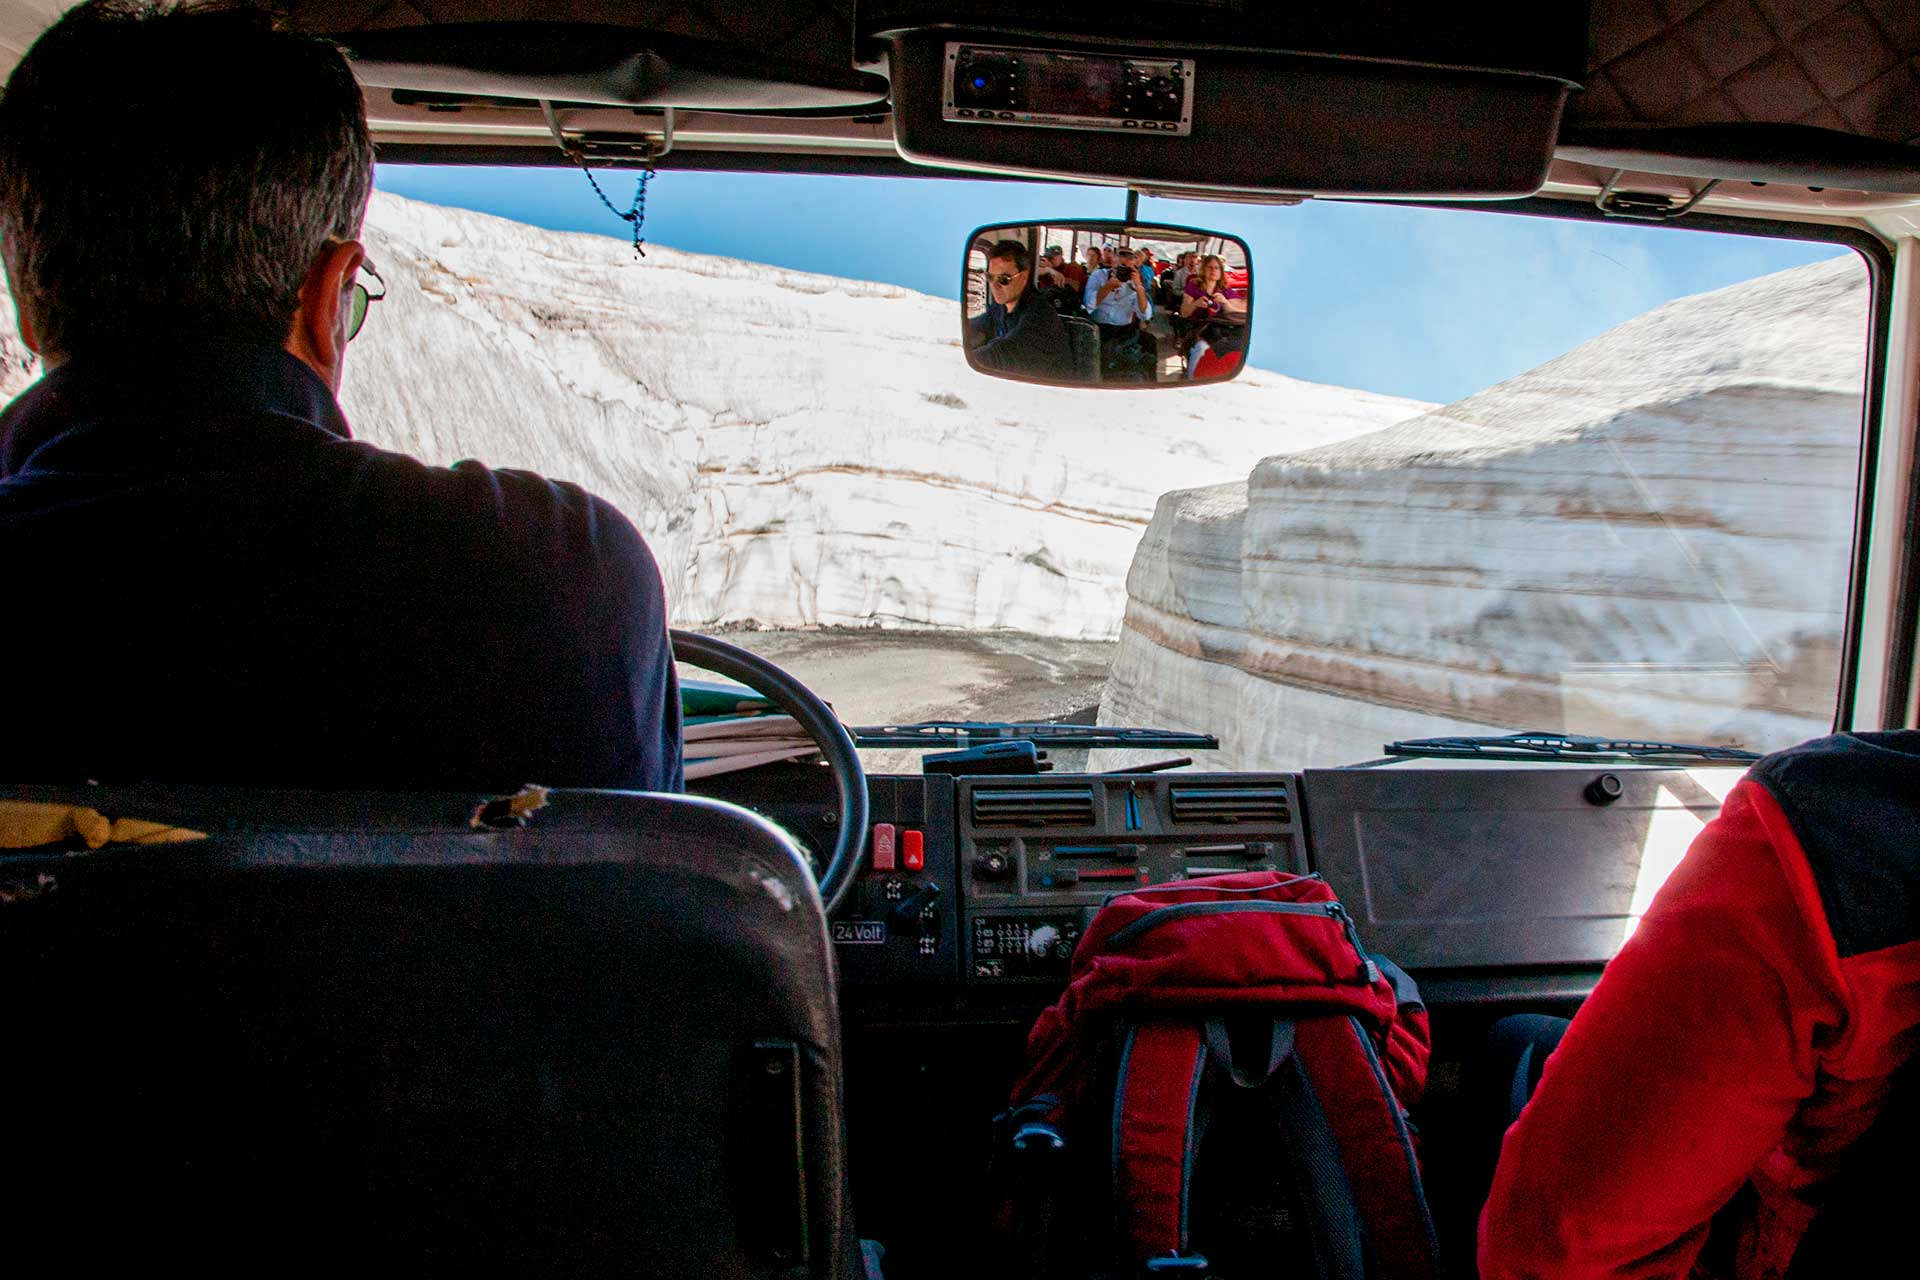 The off-road vehicle climbs up a road, which despite being the month of May, had two snow walls more than 4 meters high on either side.